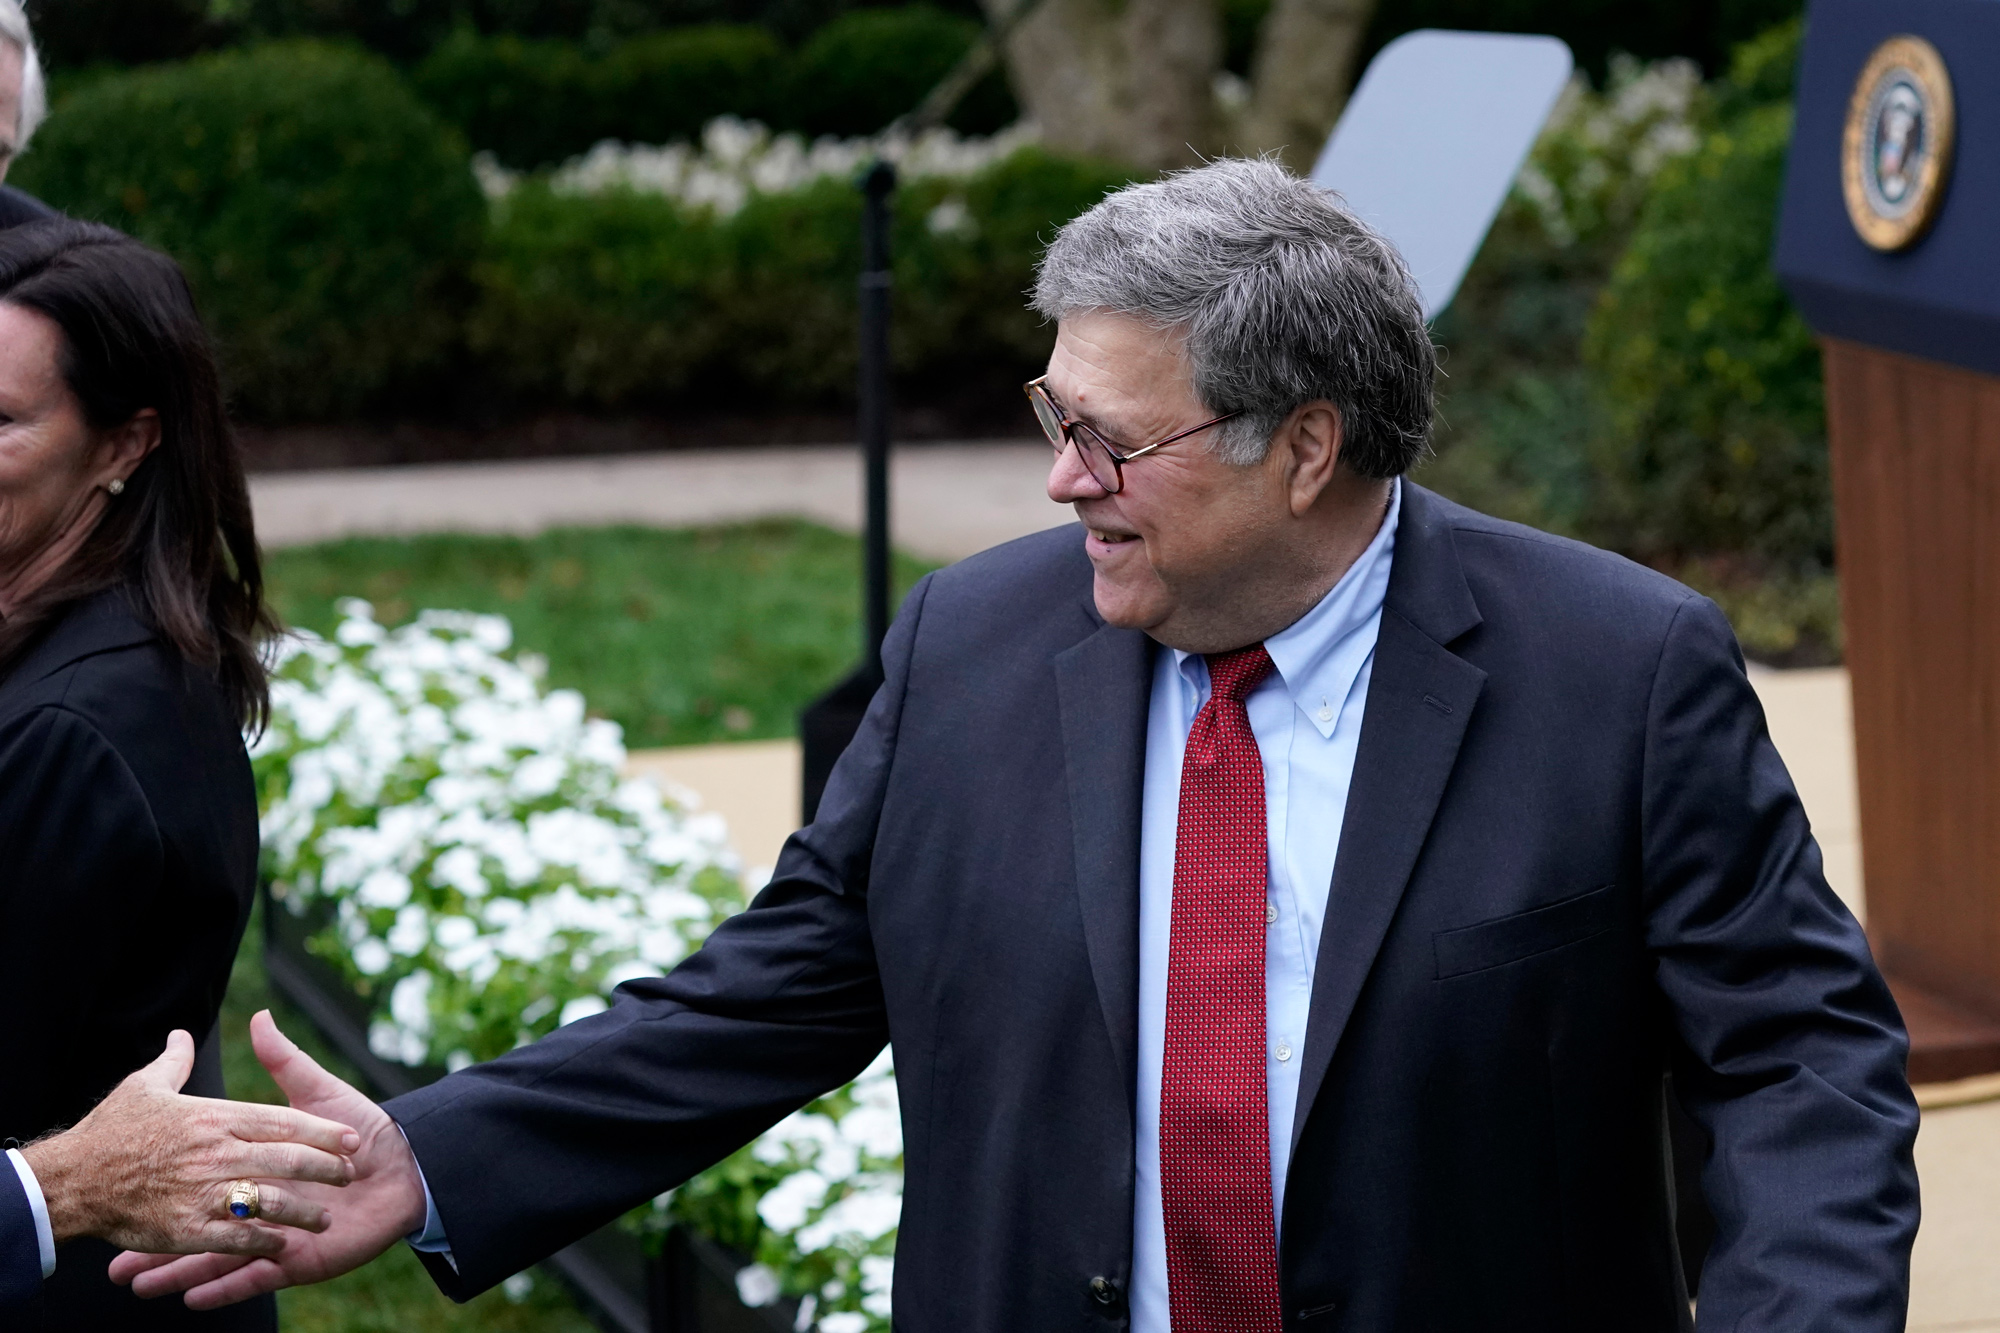 Attorney General William Barr attends President Donald Trump's announcement of Judge Amy Coney Barrett as his nominee to the Supreme Court in the Rose Garden at the White House on September 26 in Washington, DC.